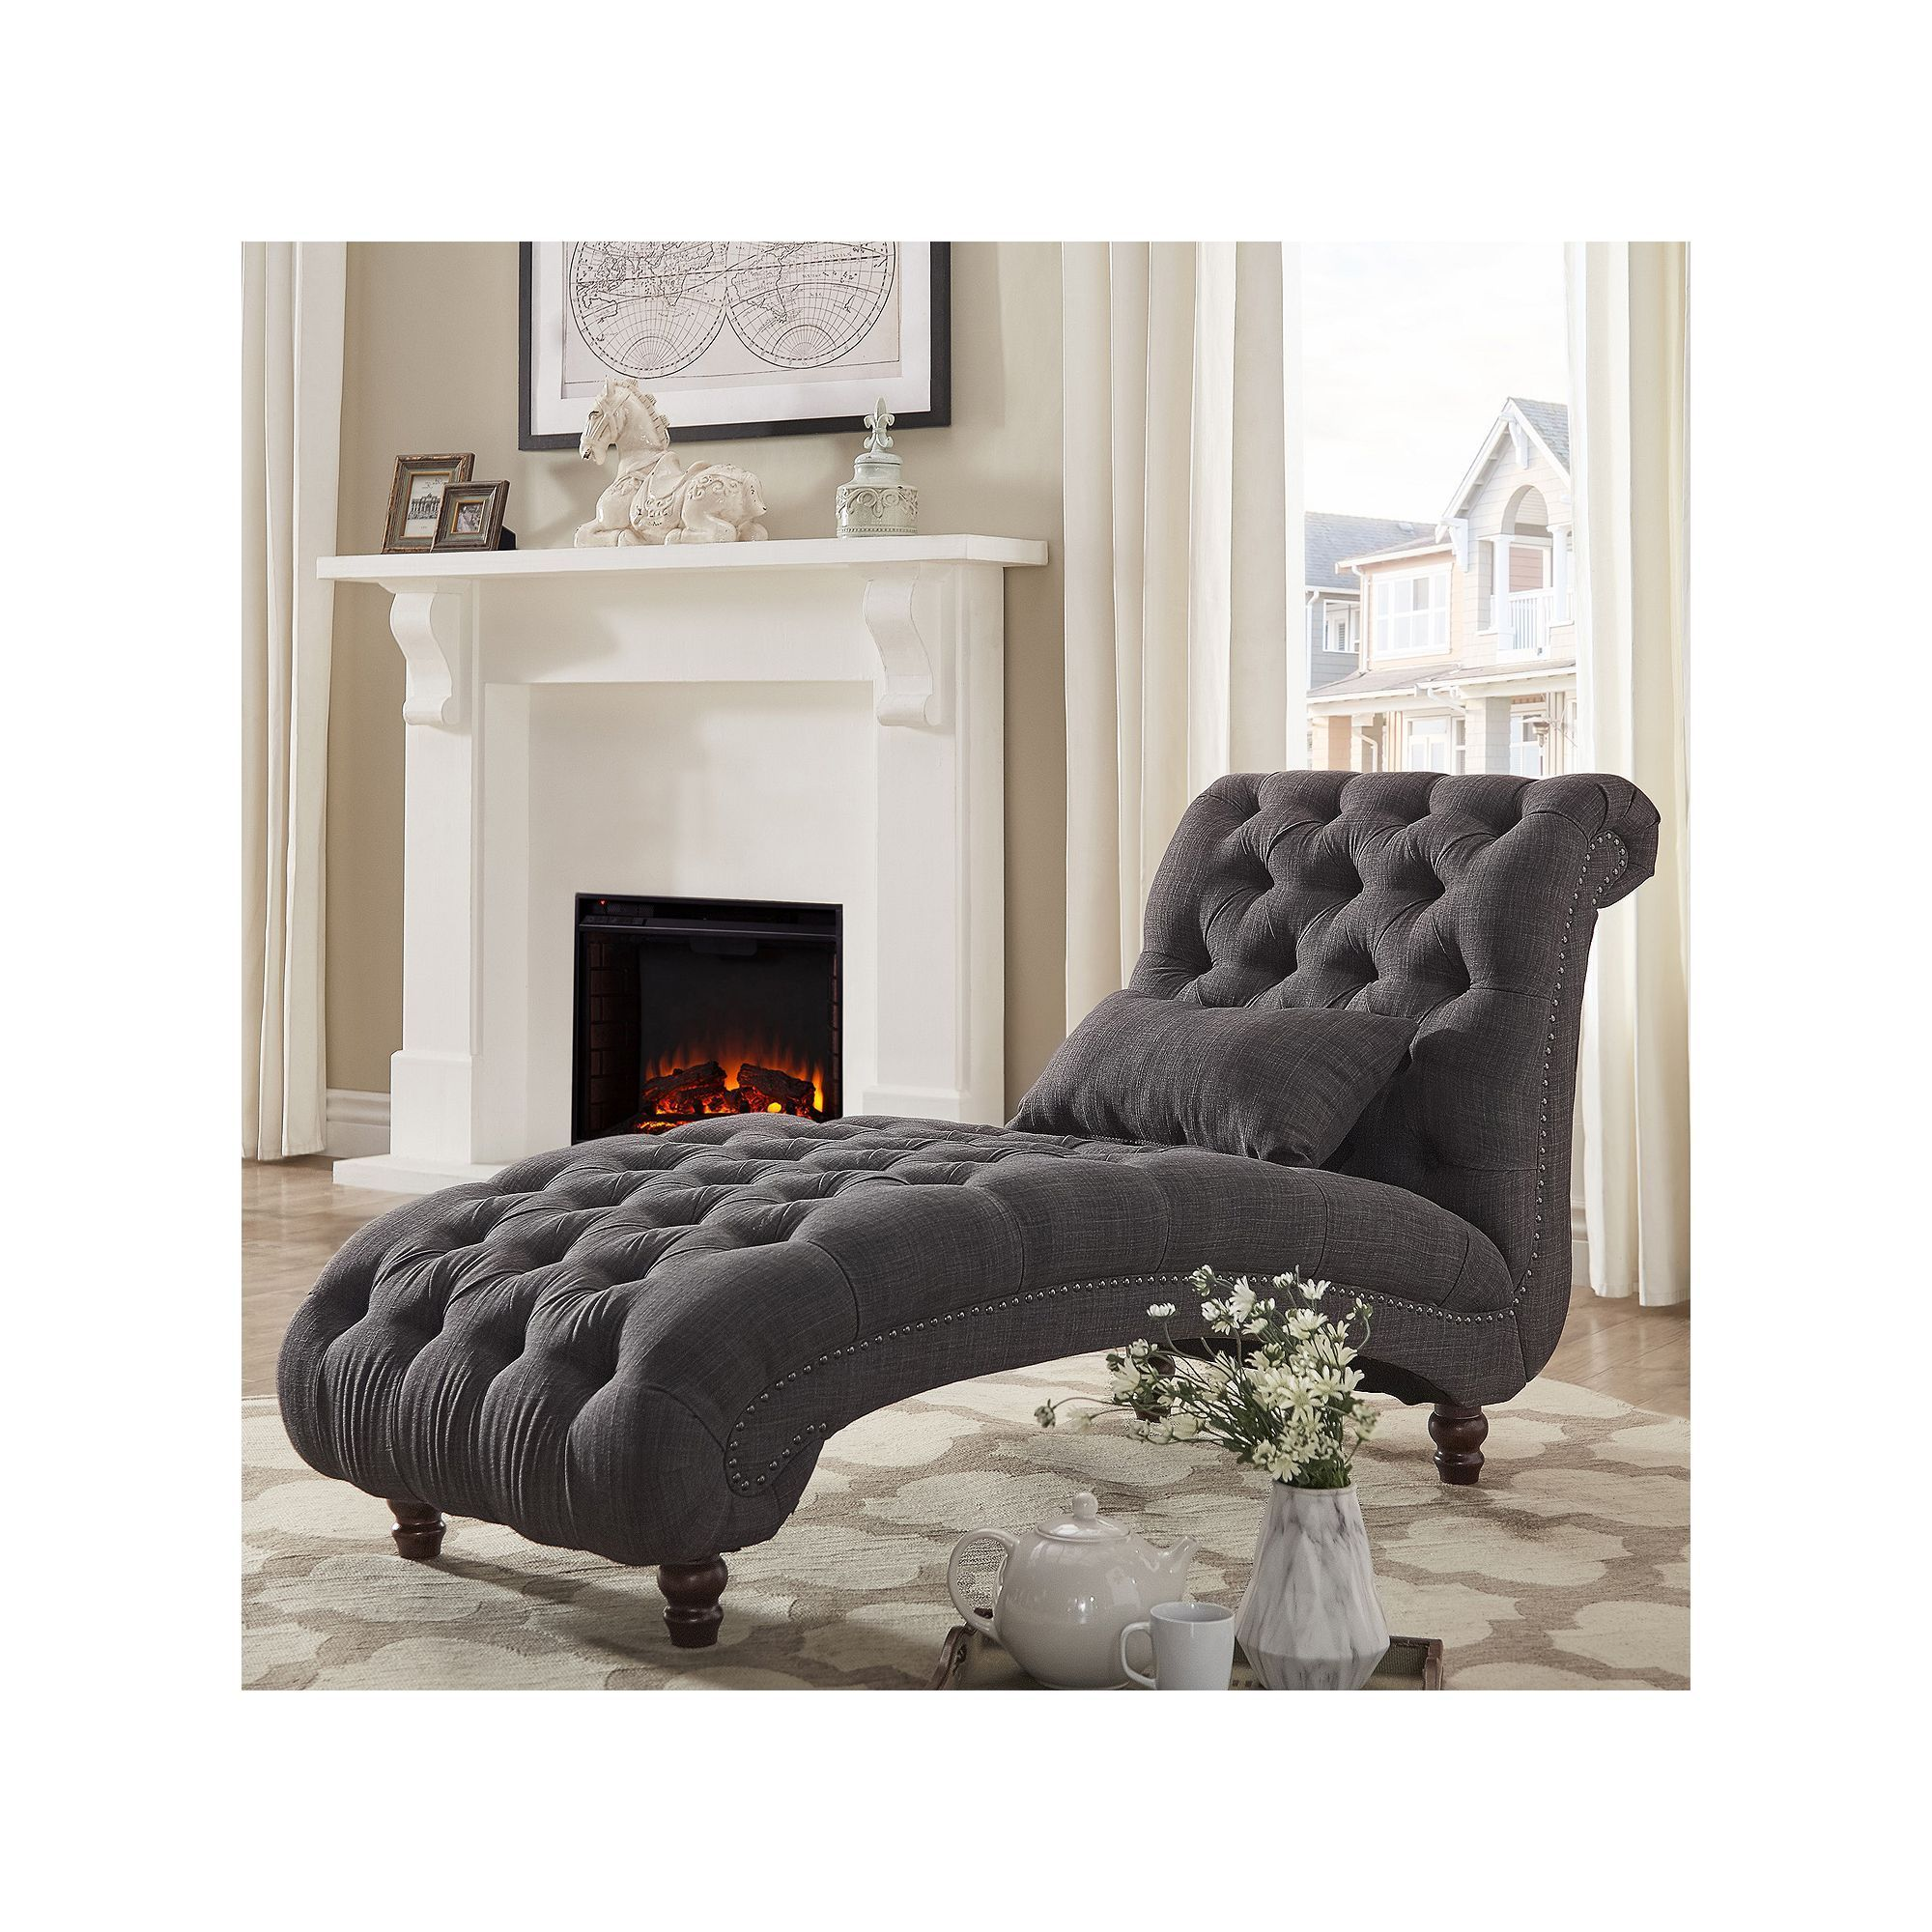 Homevance Tufted Chaise Lounge Chair Pillow 2 Piece Set Dark Grey Tufted Chaise Lounge Linen Lounge Chair Chaise Lounge